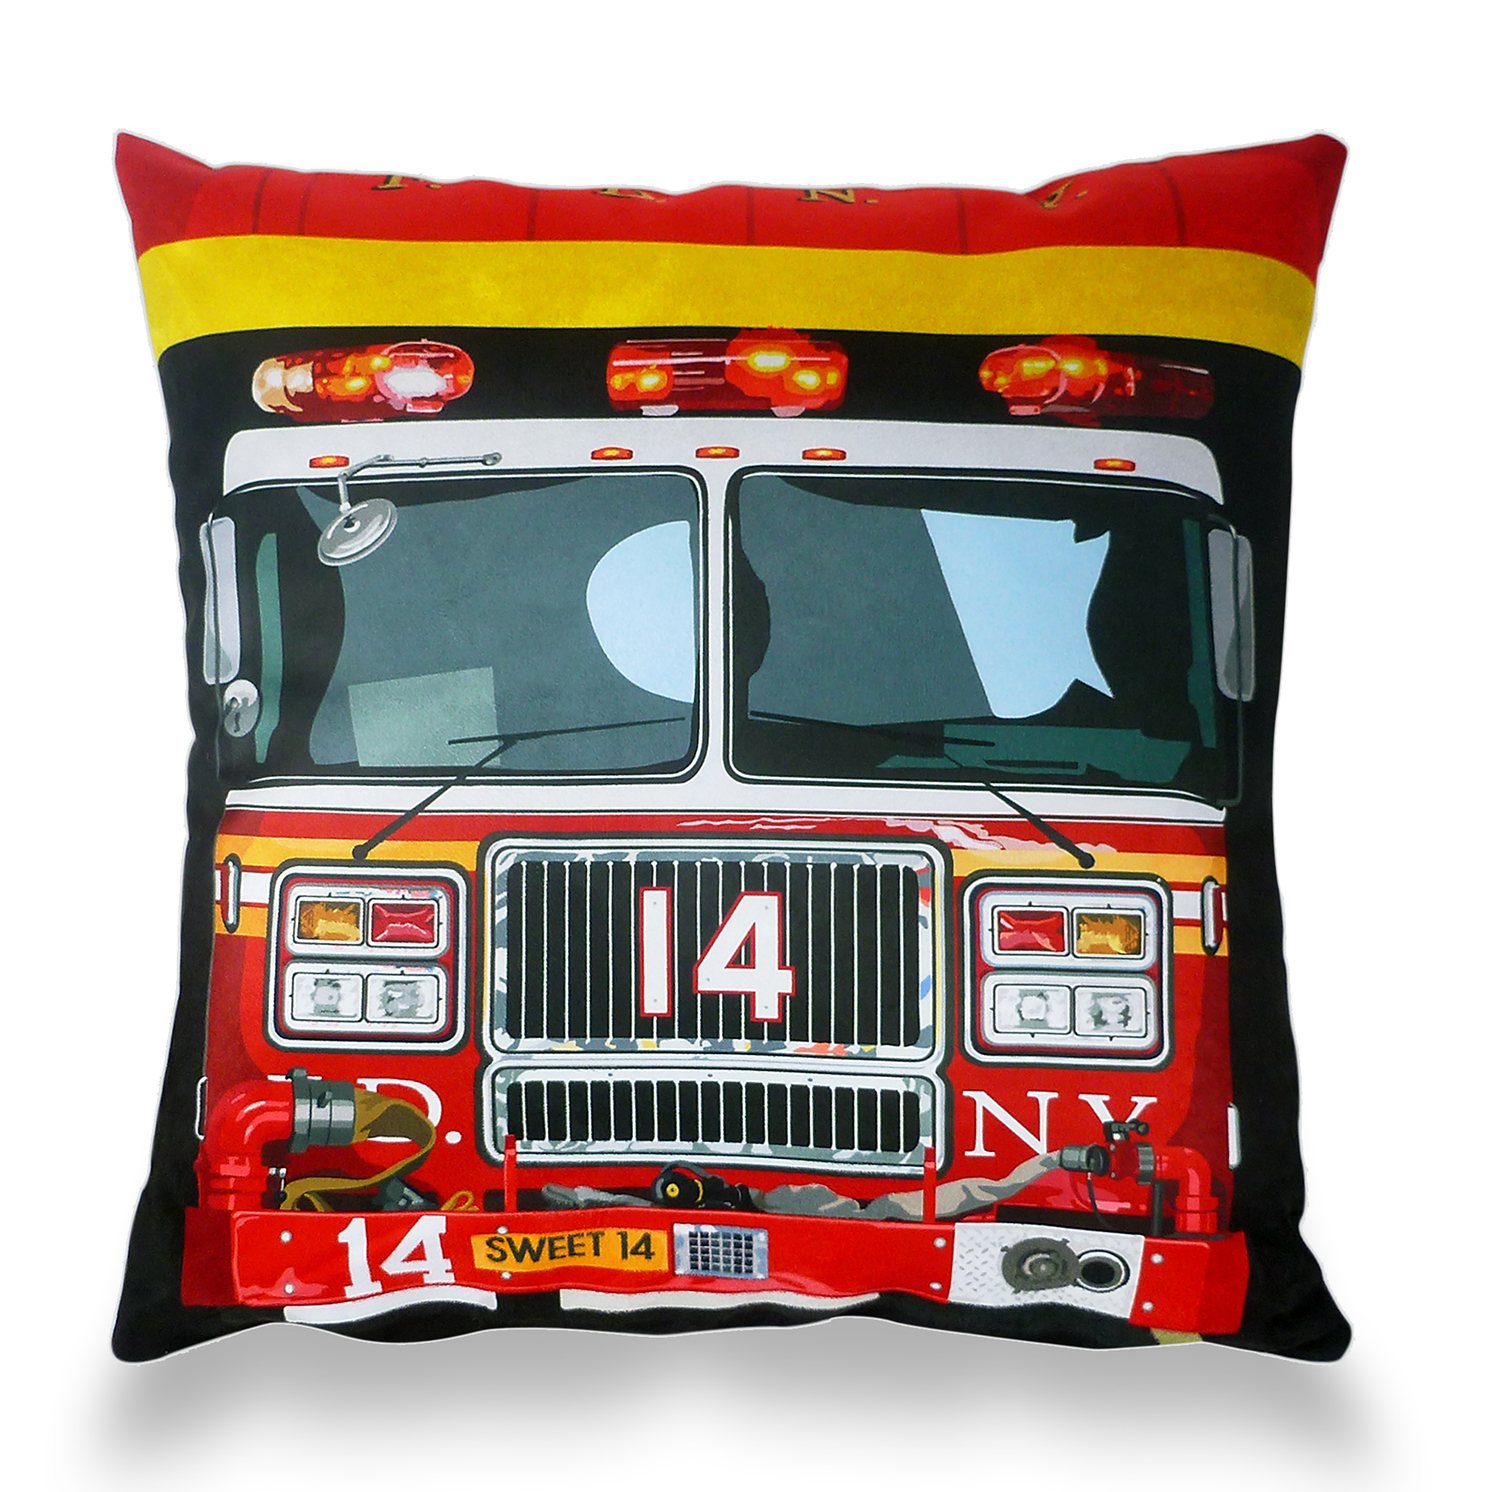 Leslie Gerry – New York Fire Department Cushion